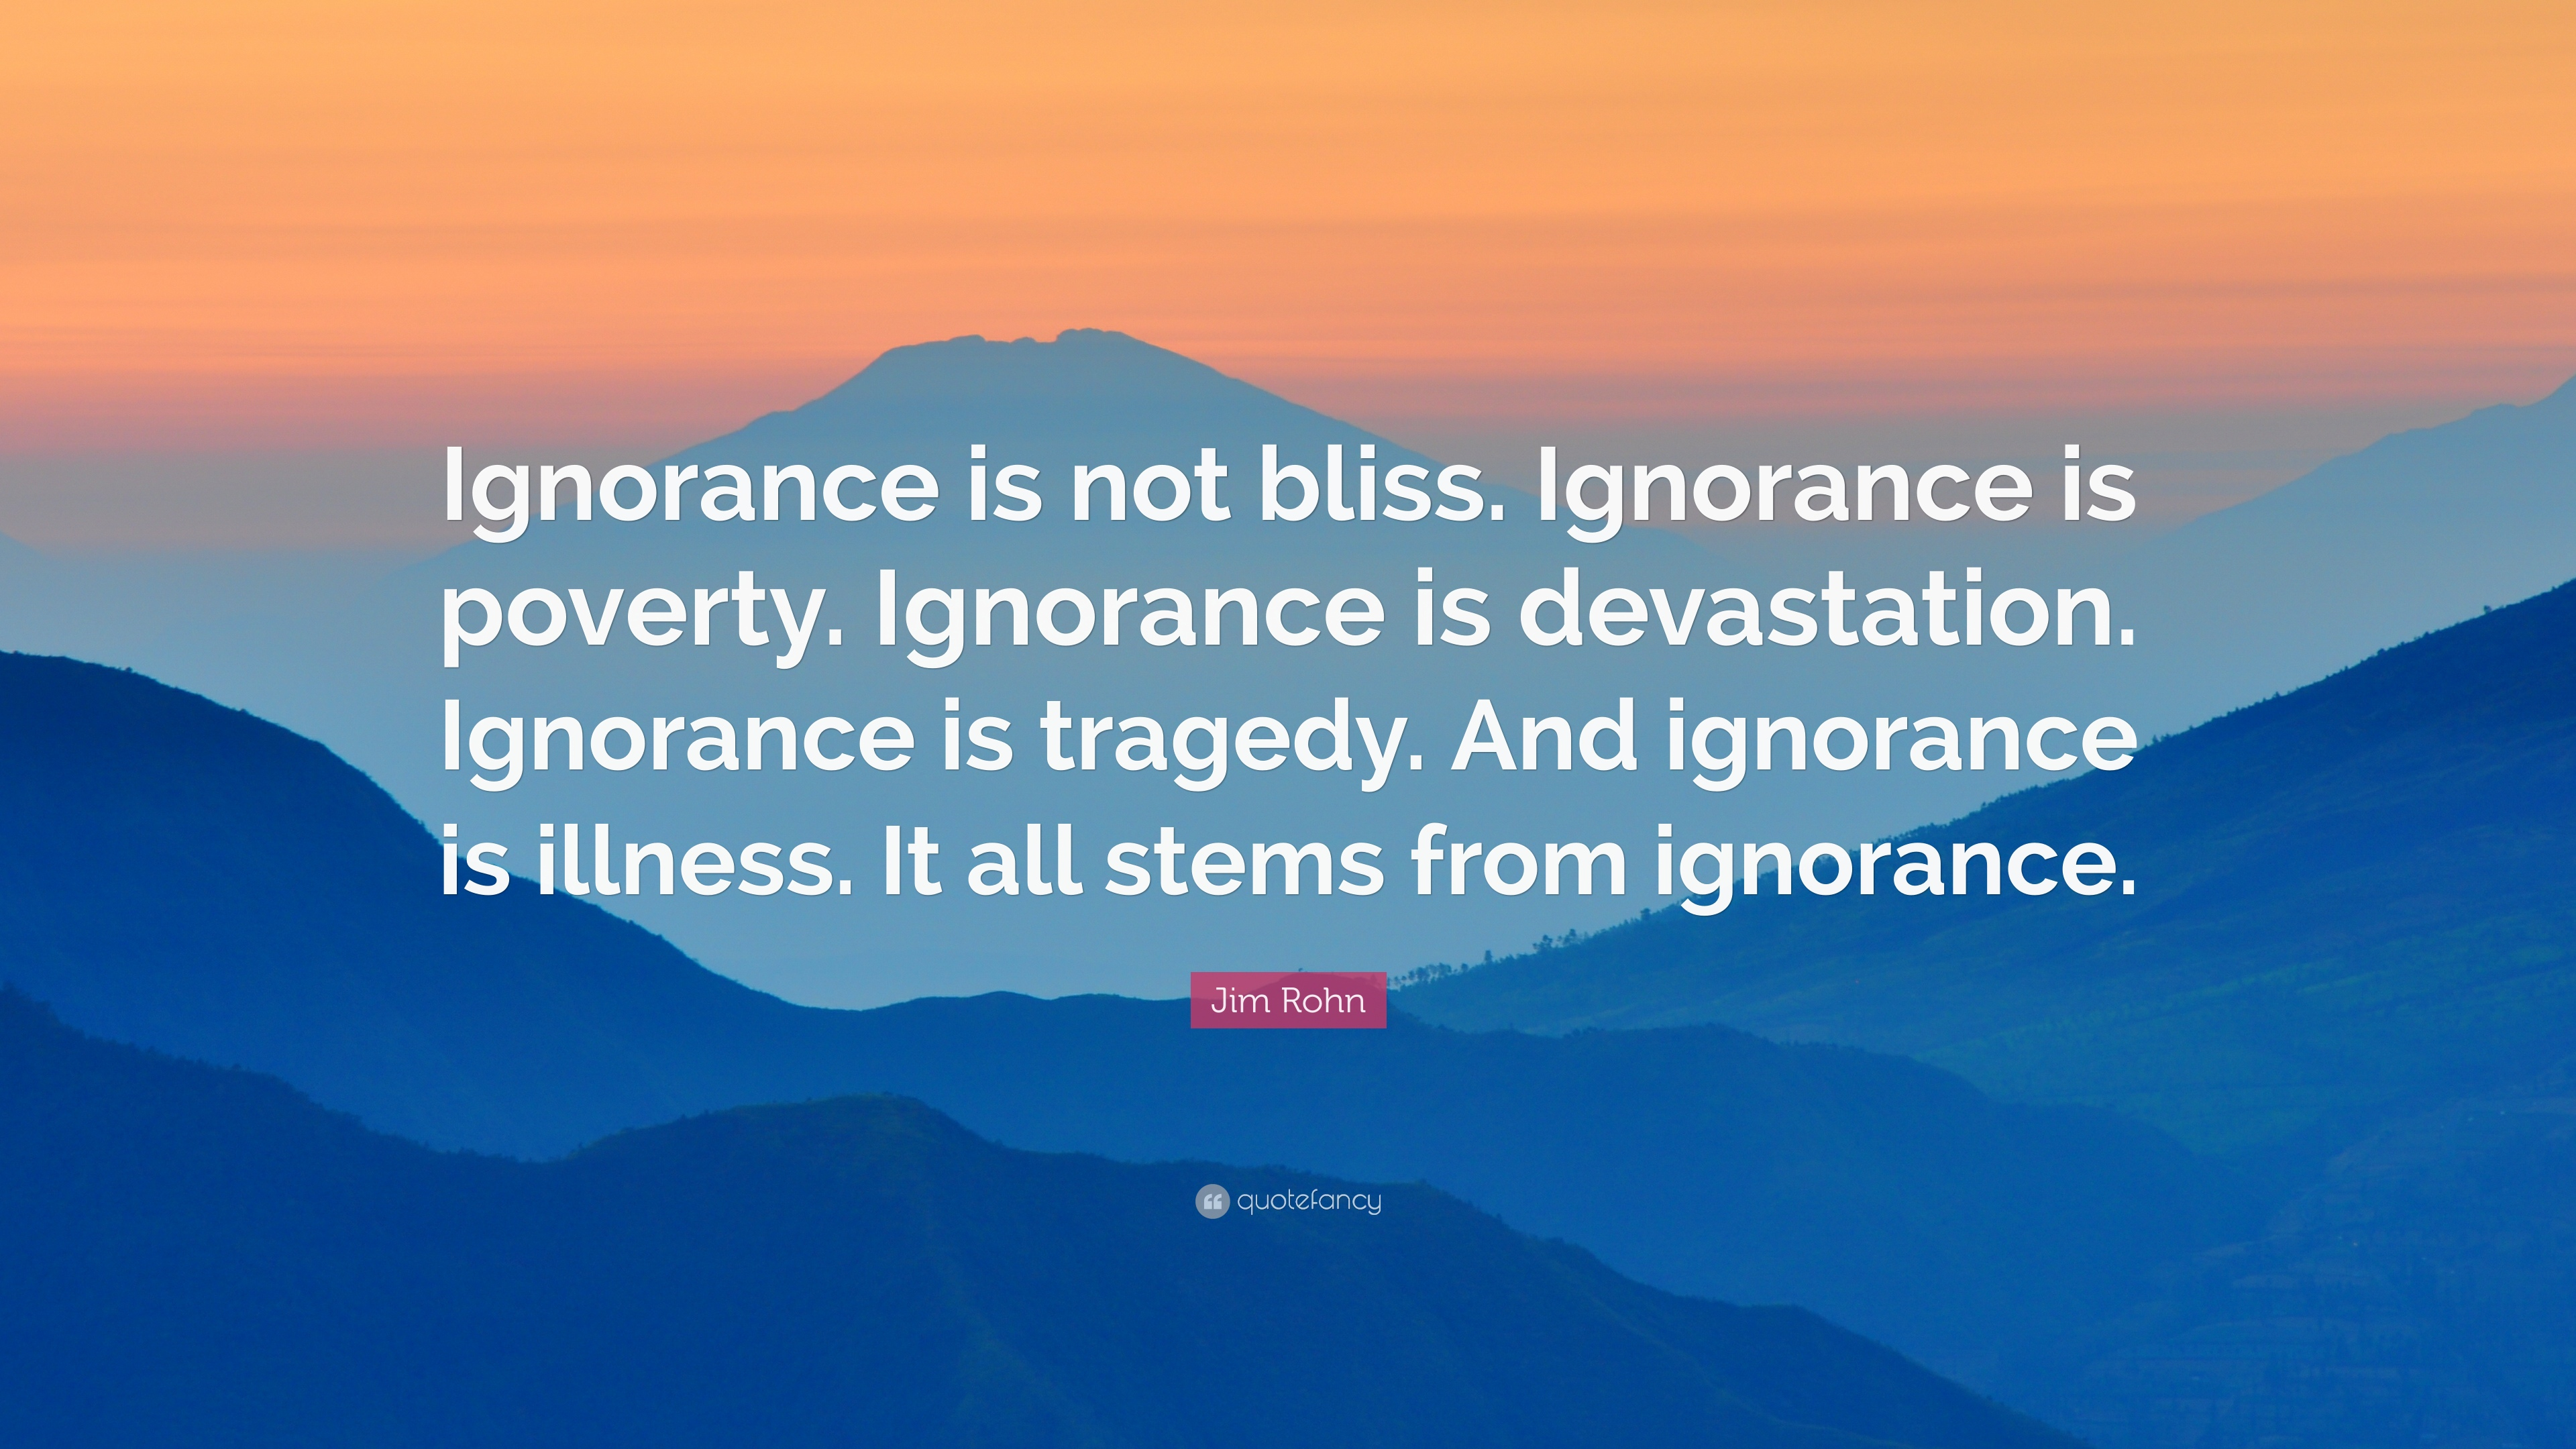 Ignorance essay